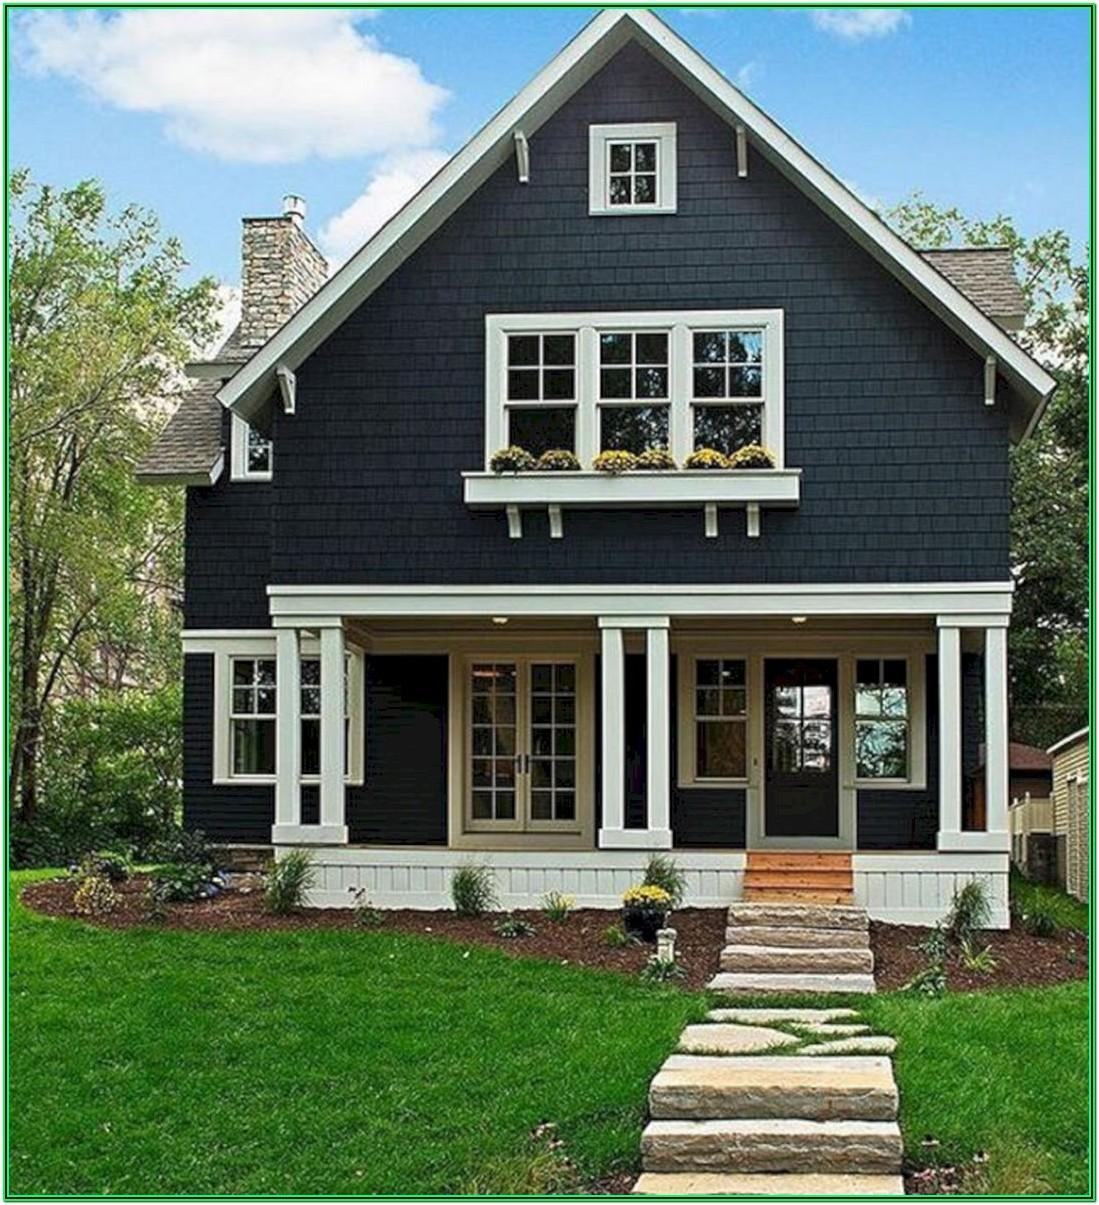 Best Exterior House Color To Hide Dirt